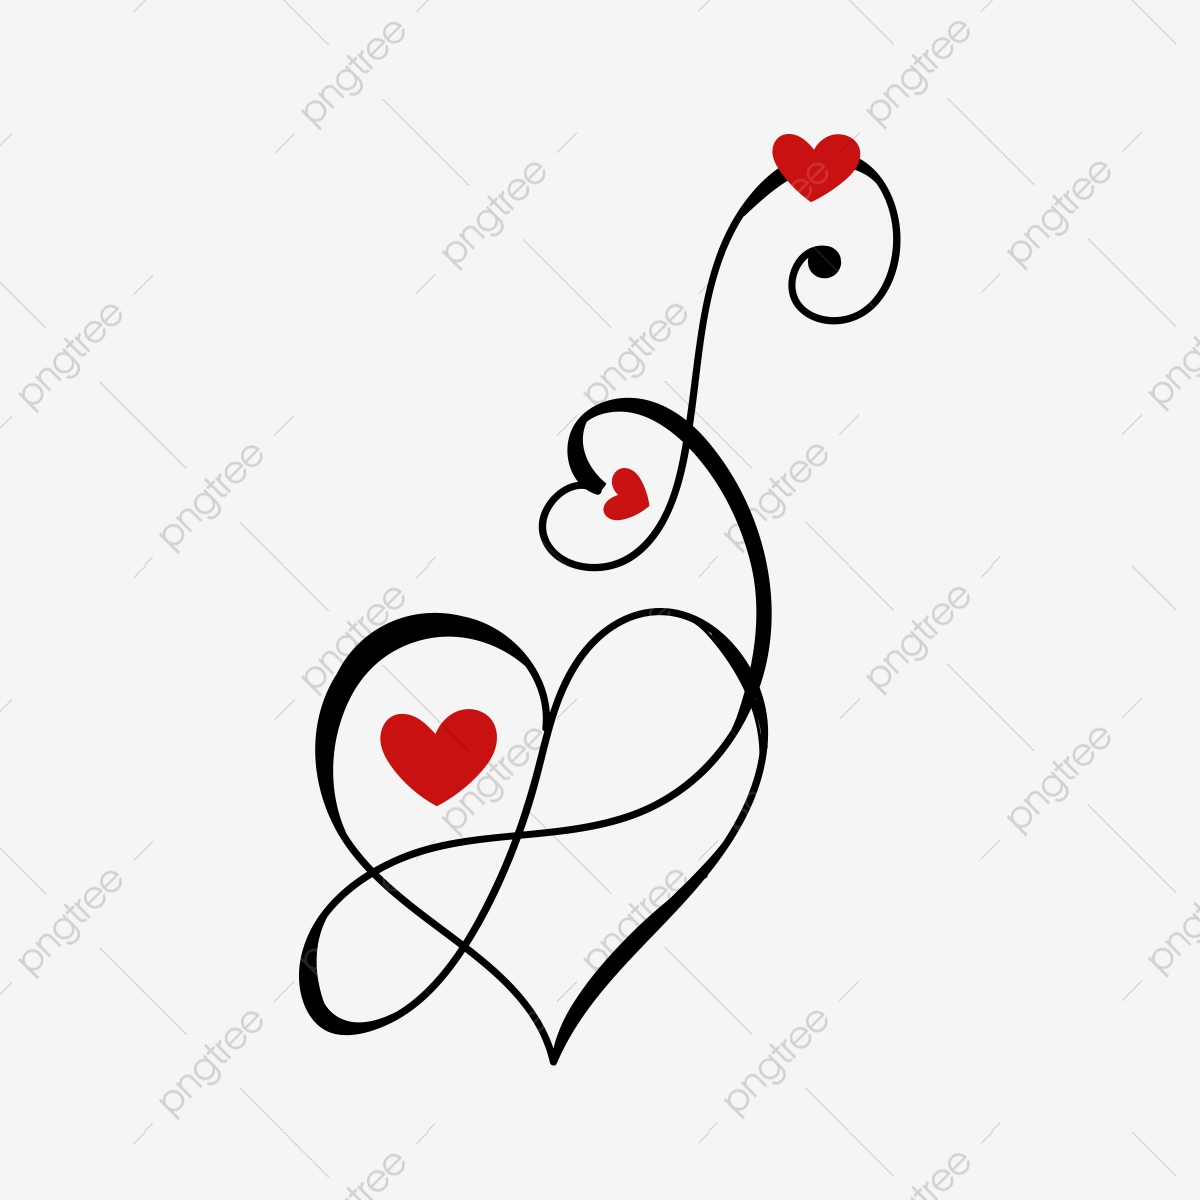 Love The Sign.Love Heart With The Sign Of Infinity Love Heart Heart